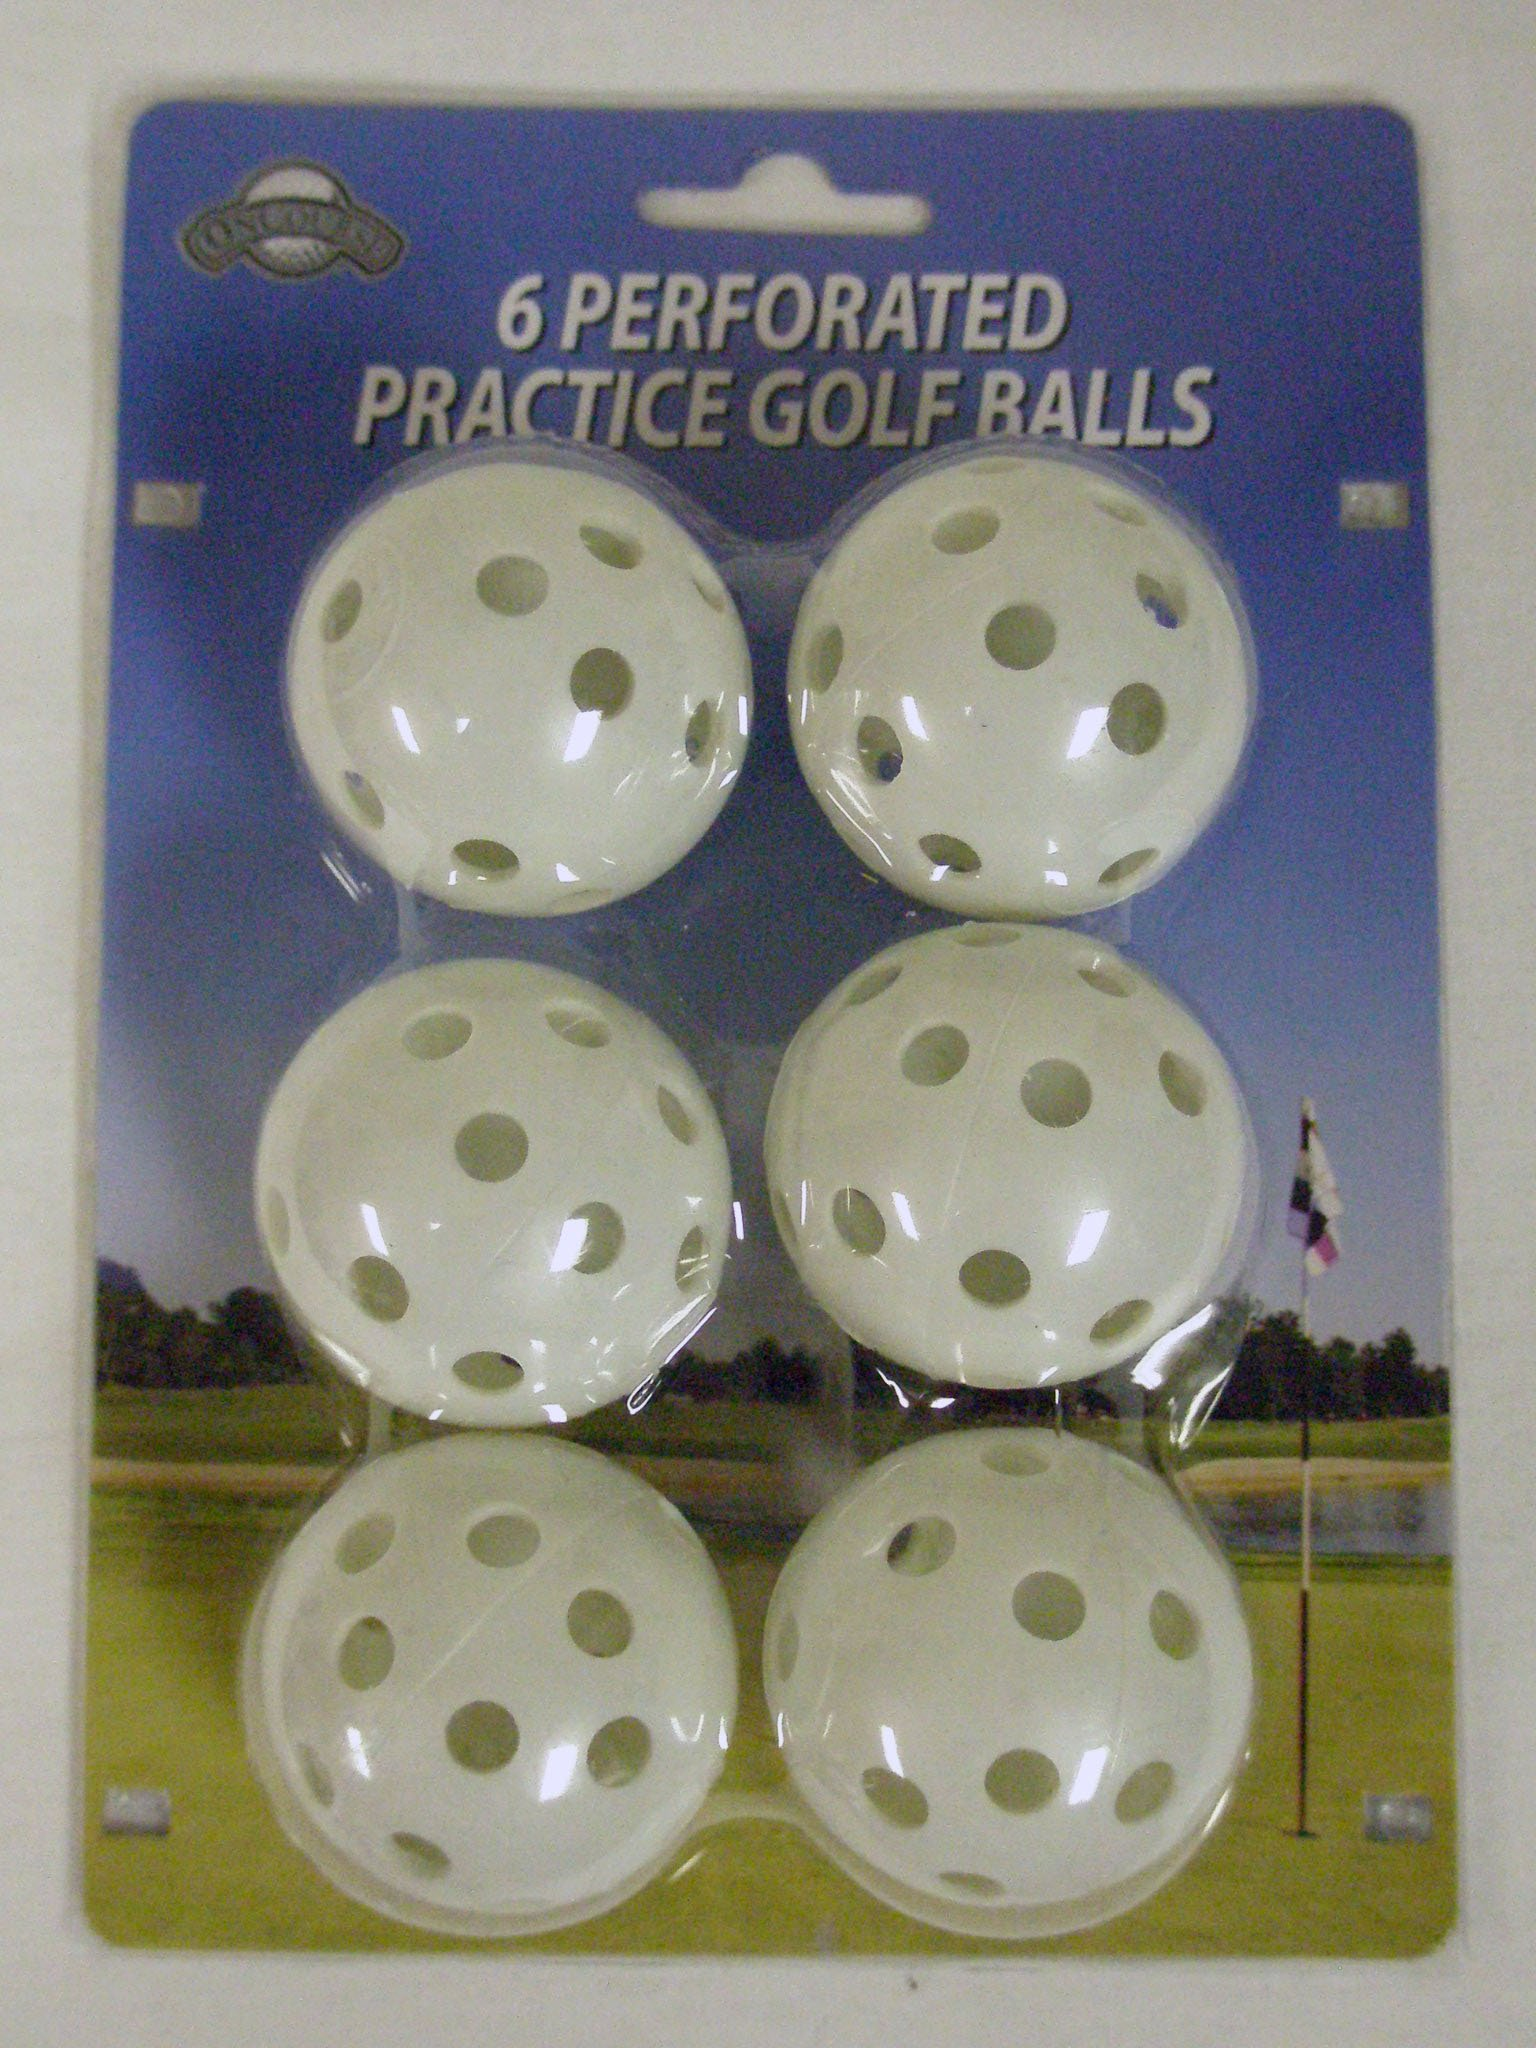 On Course Perforated Practice Golf Balls (6pk) Plastic Ball New by OnCourse (Image #1)